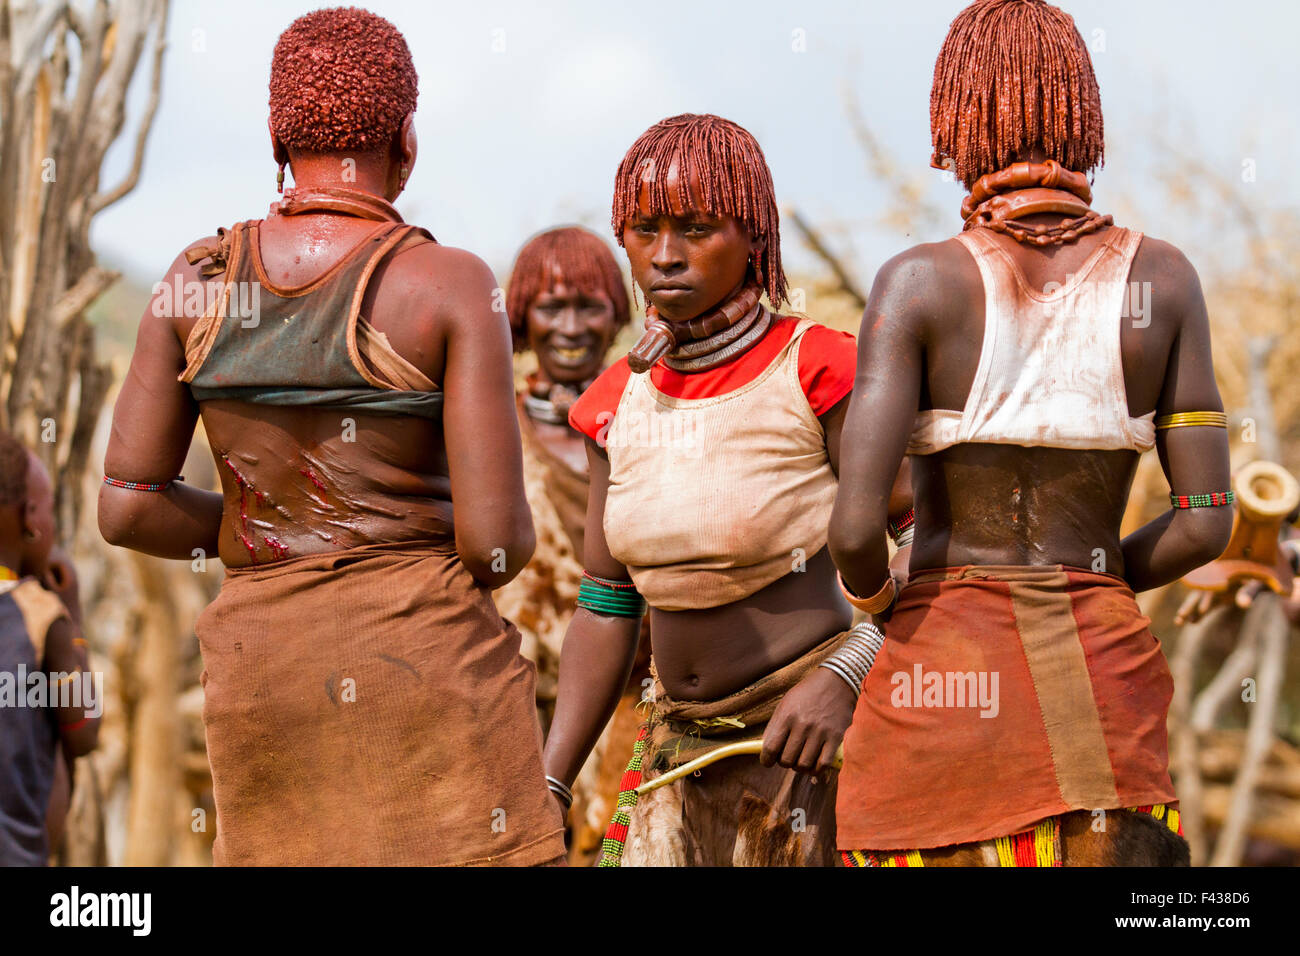 The raw scars on a Hamar woman's back after being whipped at a 'Jumping of the Bull' ceremony. Omo Valley Ethiopia Stock Photo